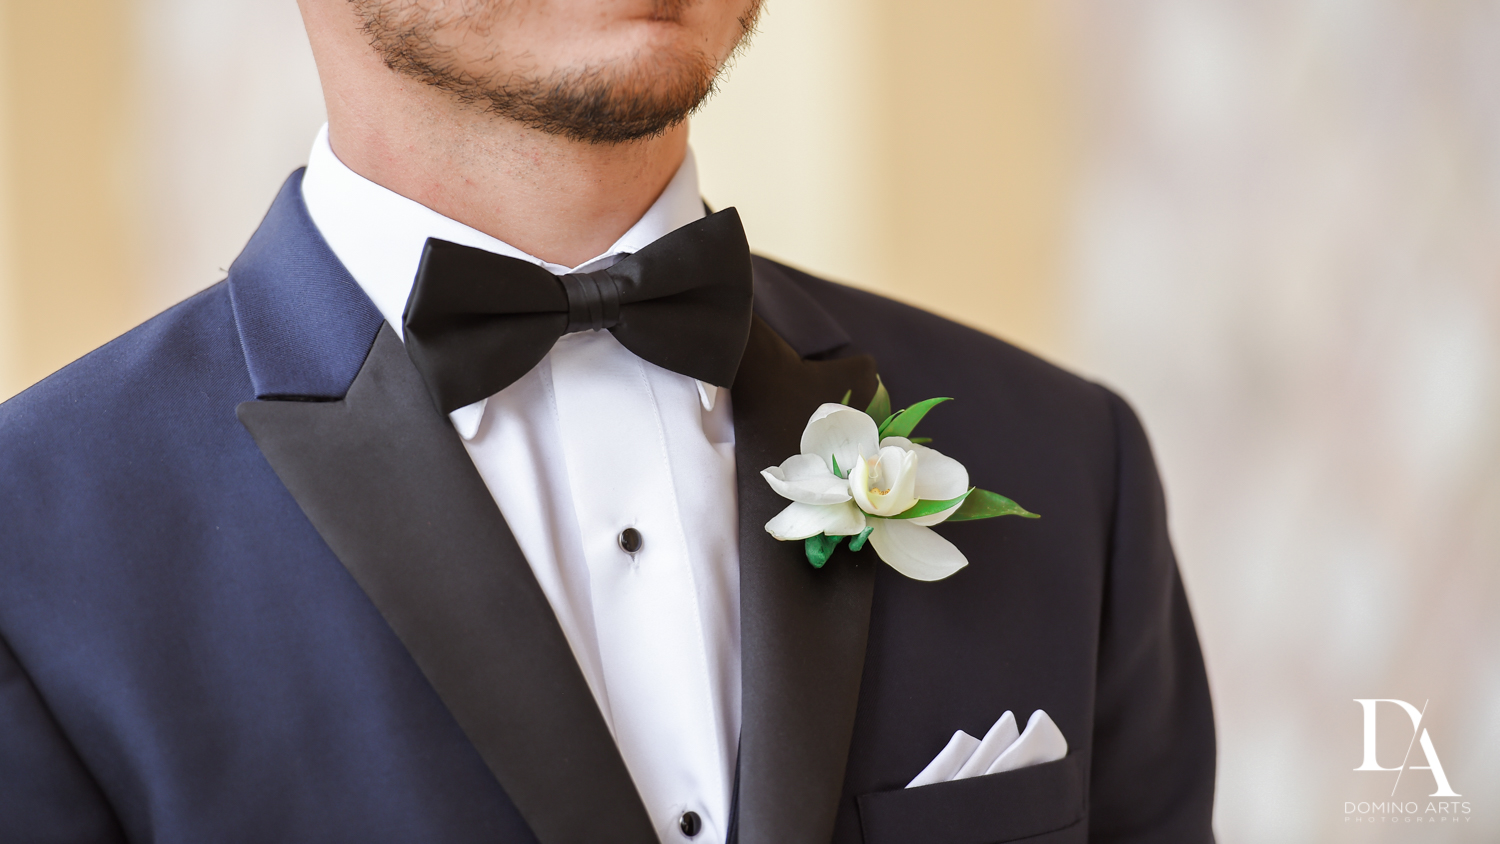 Groom's boutonniere at The Addison Boca Raton